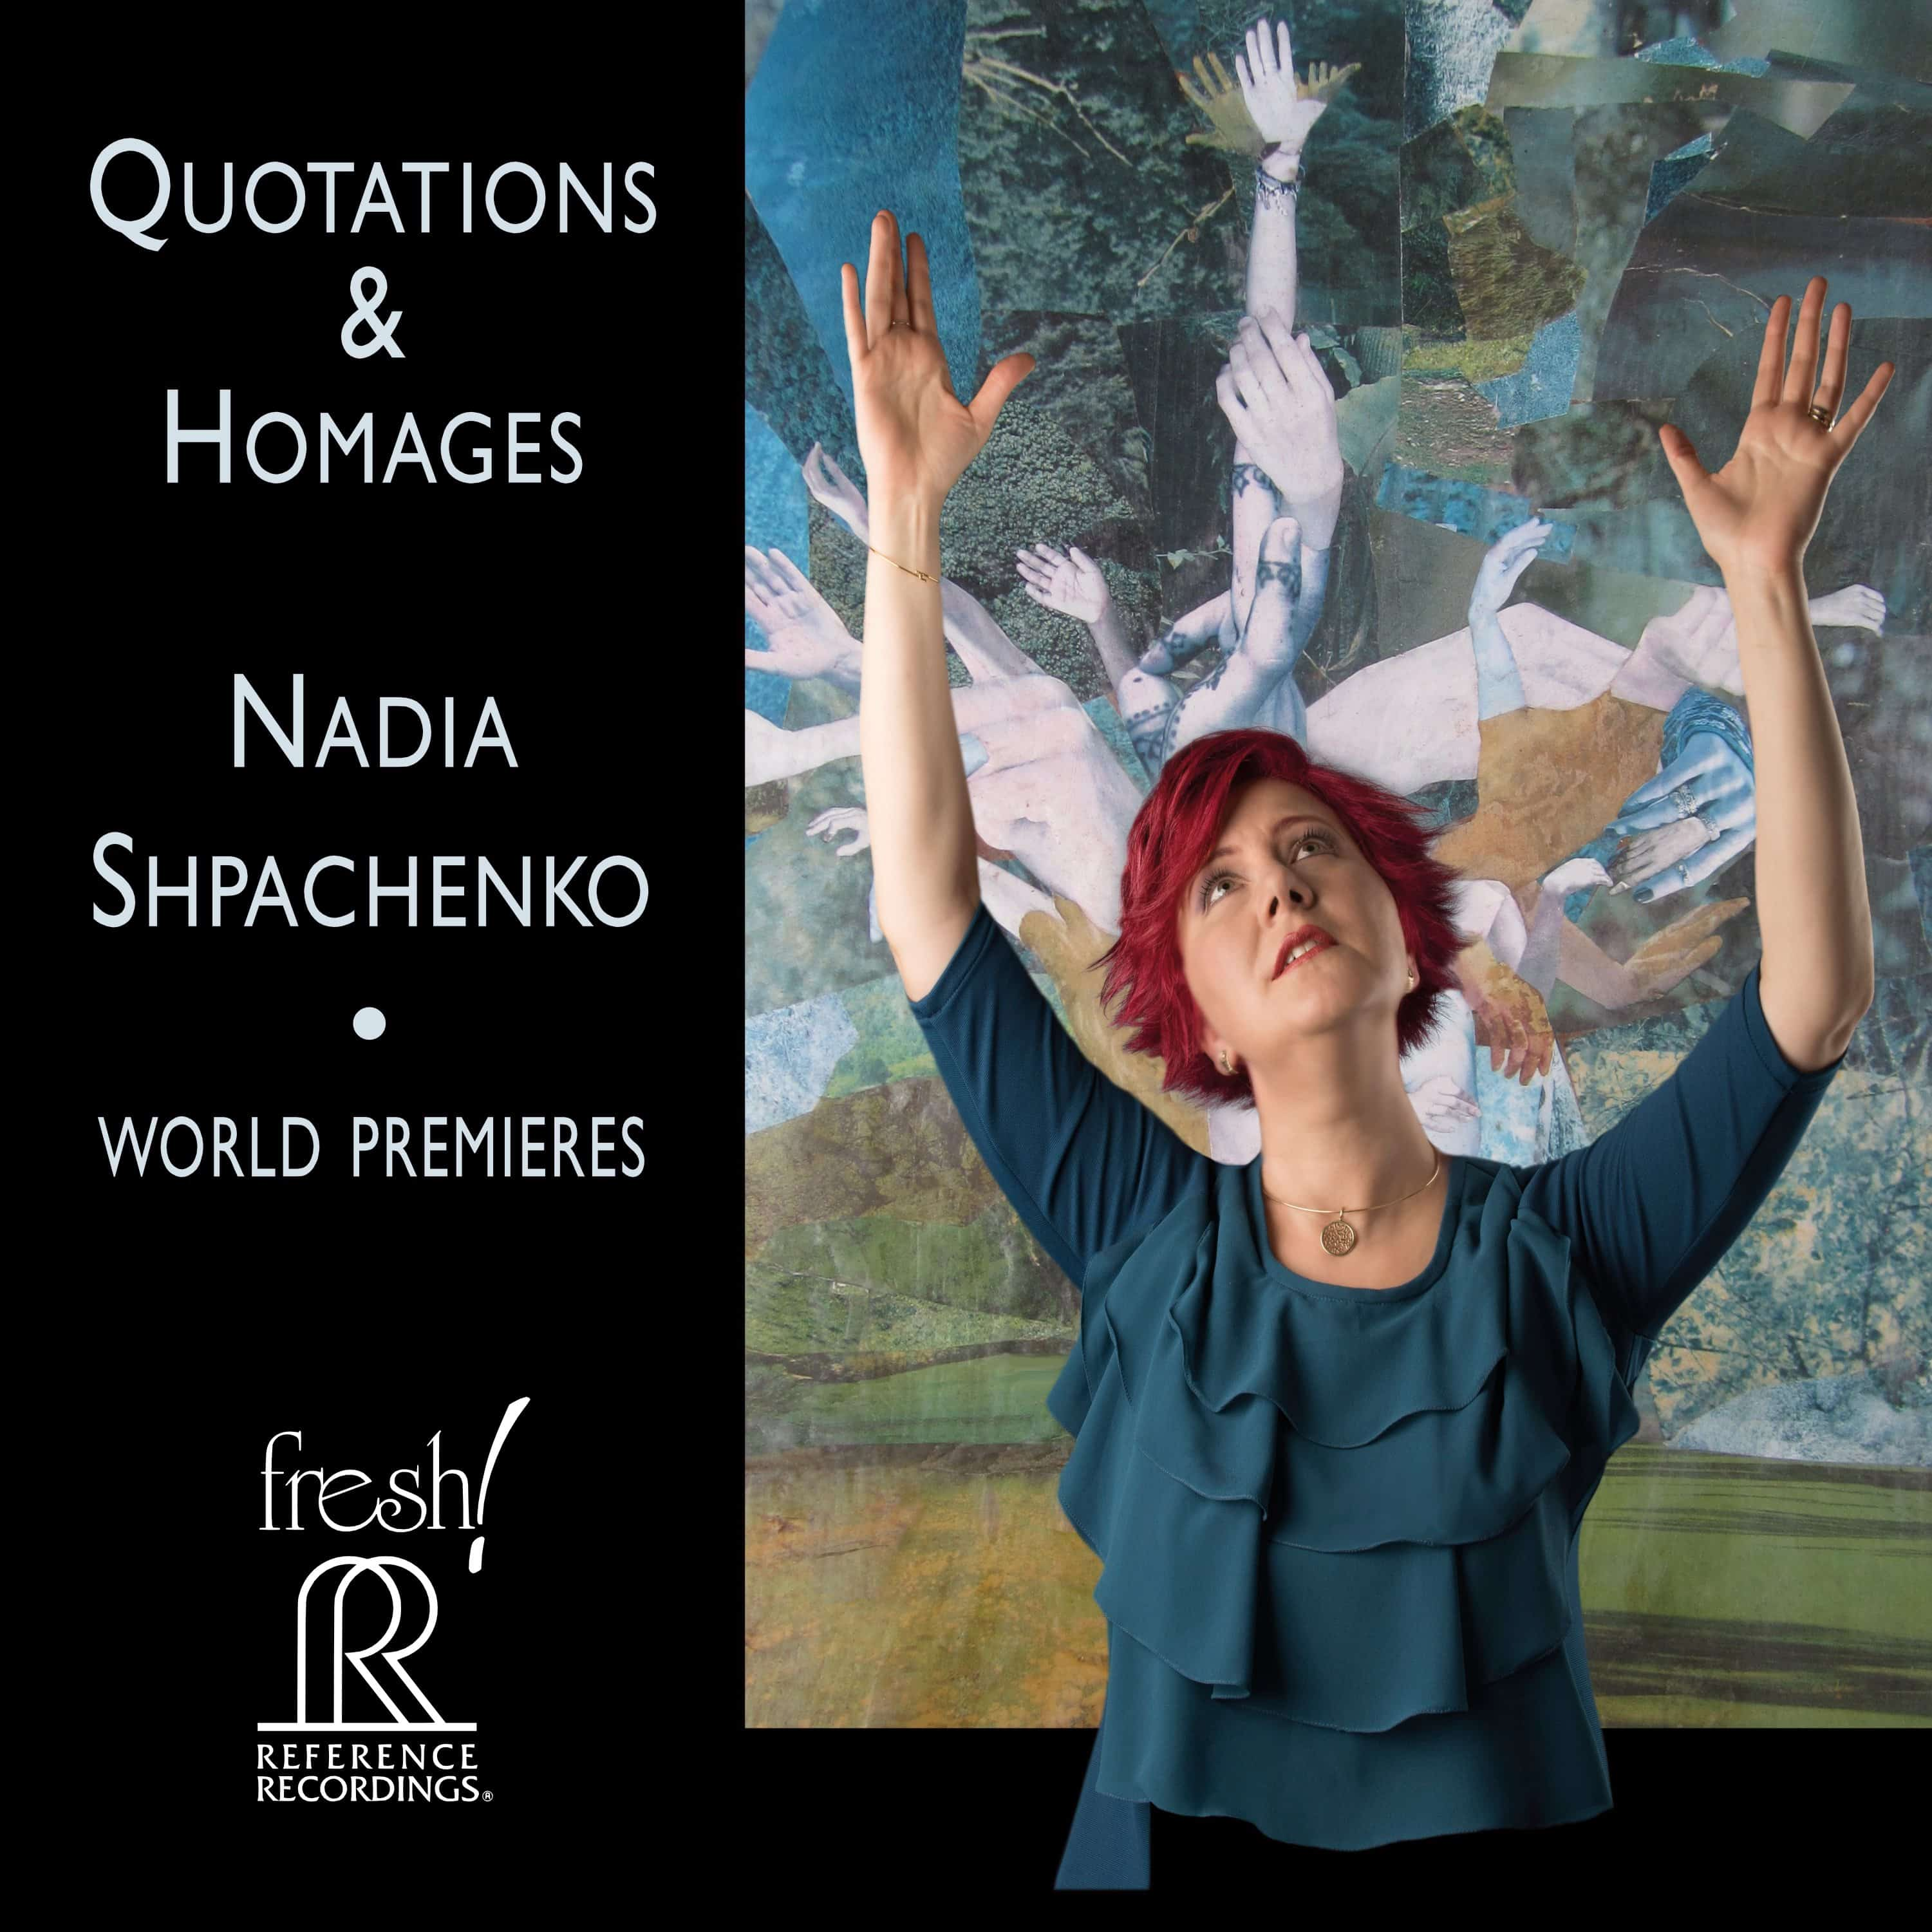 Nadia Shpachenko: Quotations & Homages